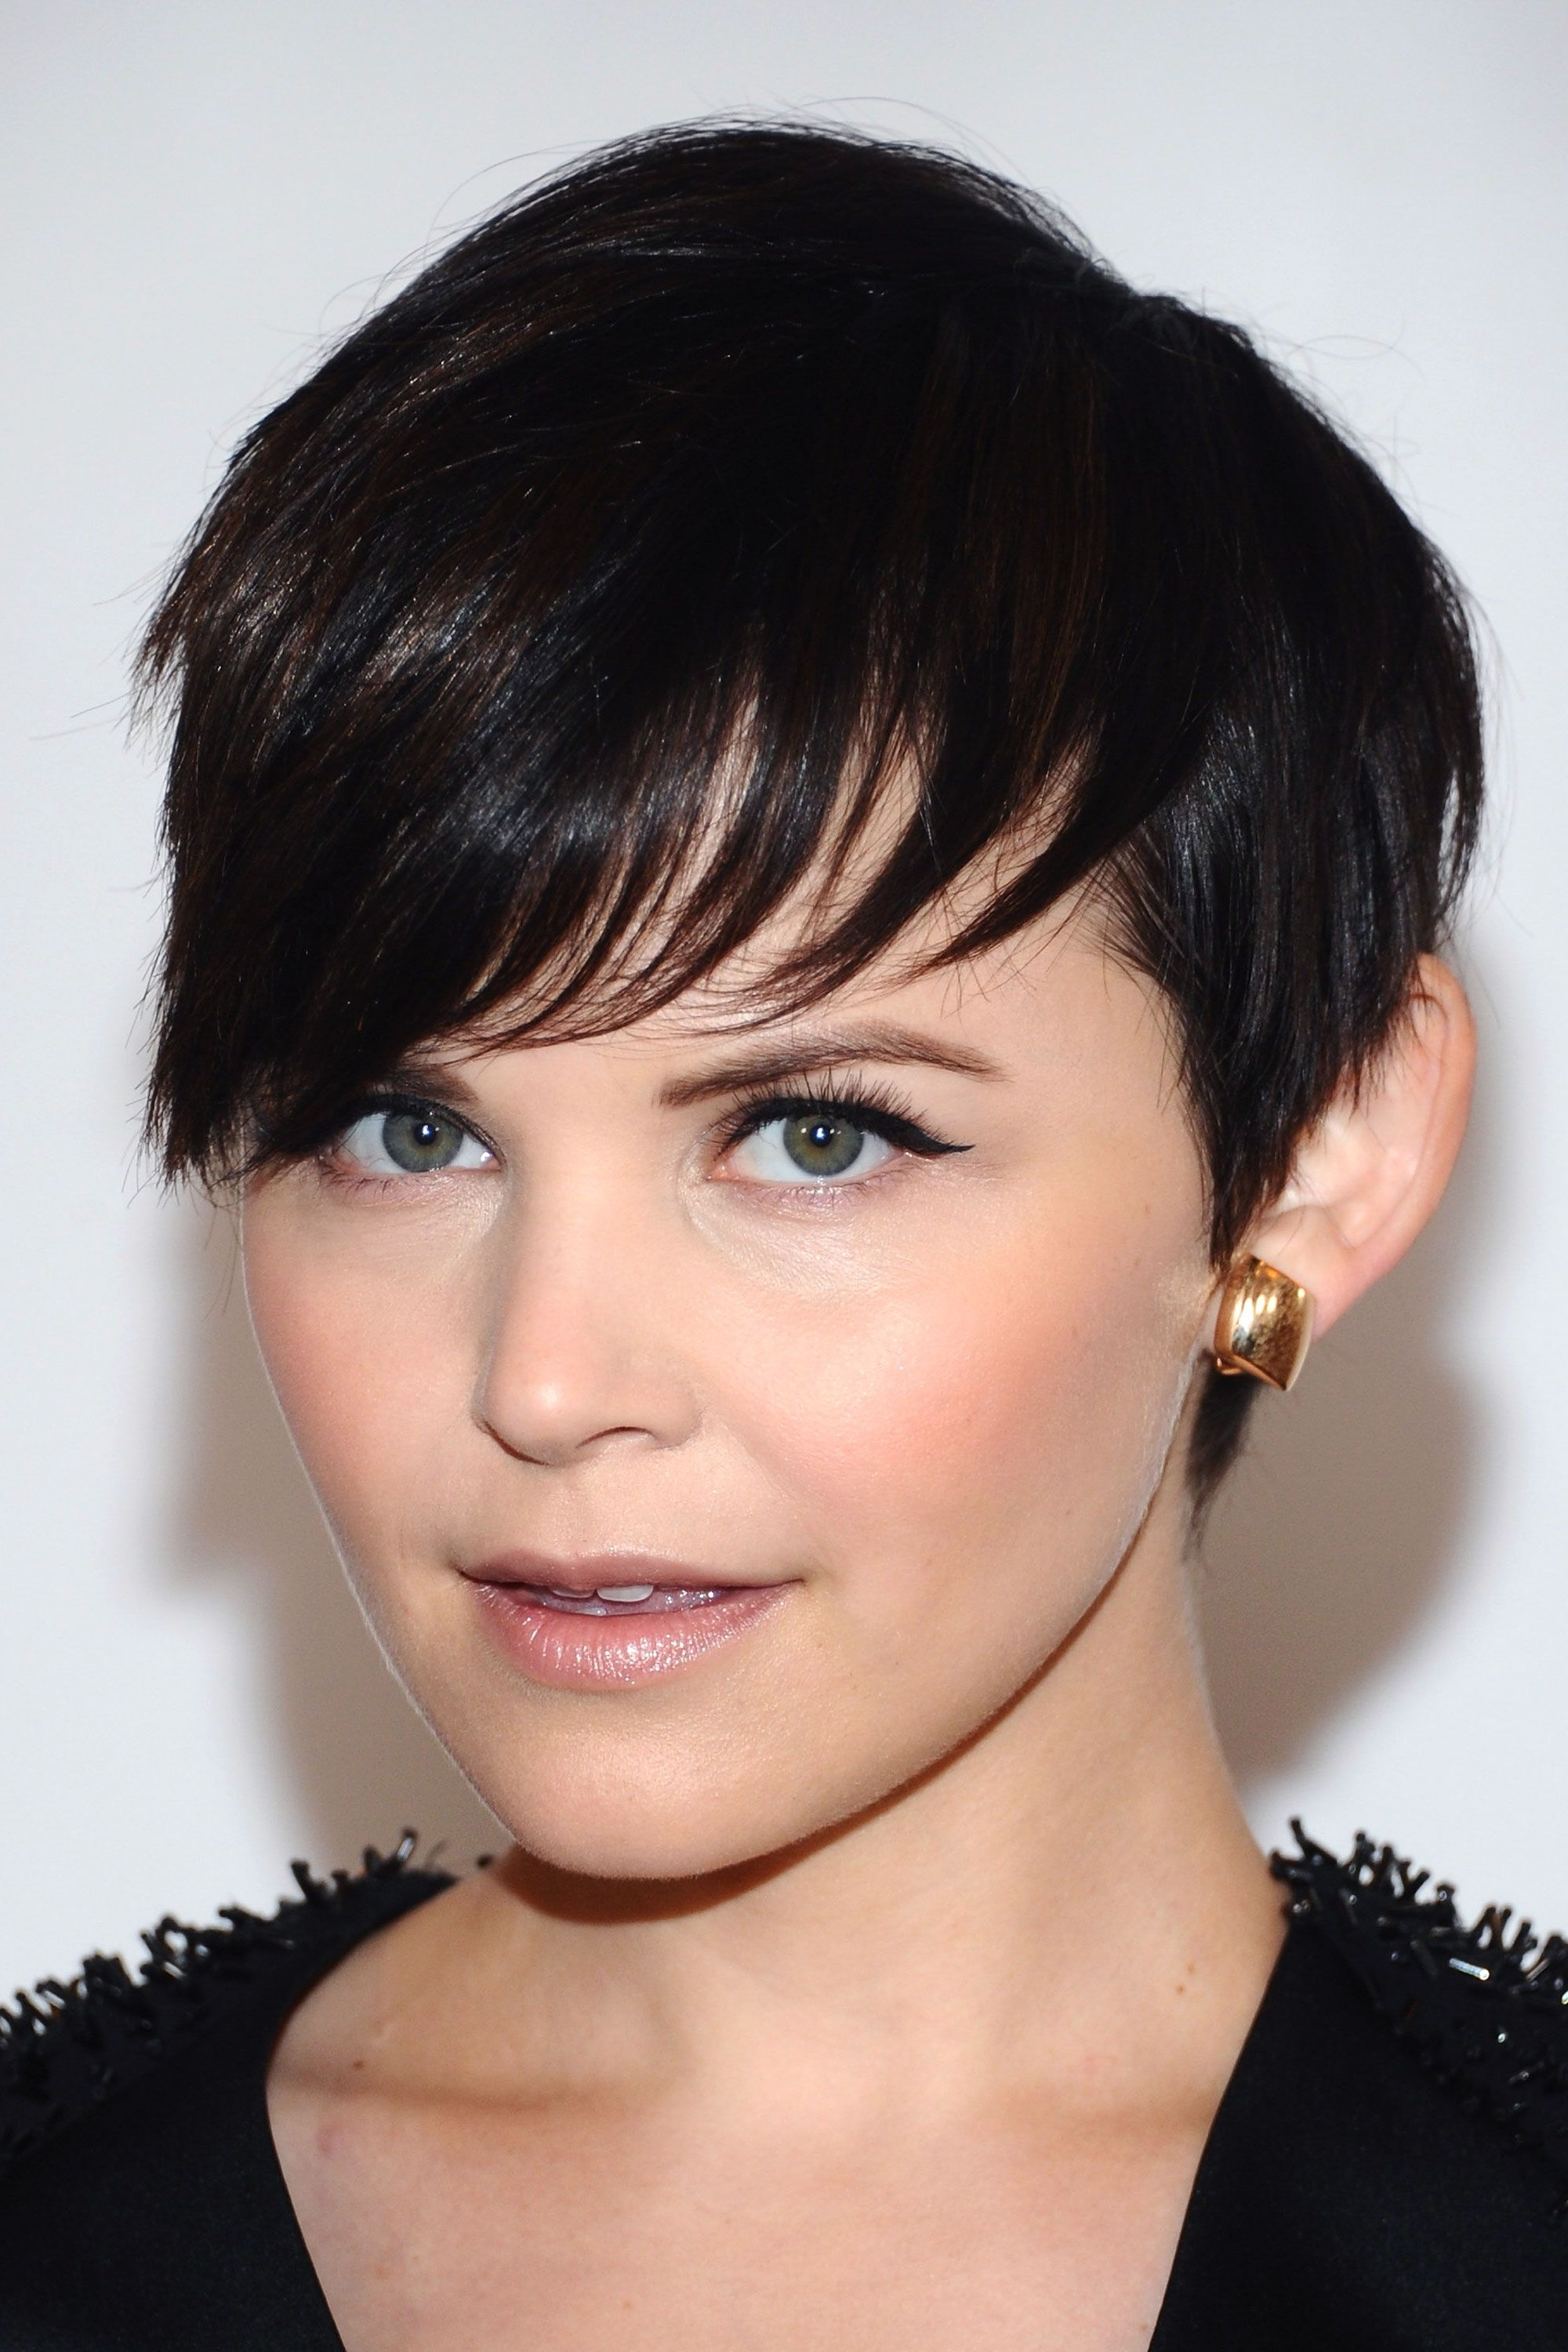 40+ Pixie Cuts We Love For 2018 – Short Pixie Hairstyles From For Most Recent Pixie Hairstyles For Girls (View 12 of 15)